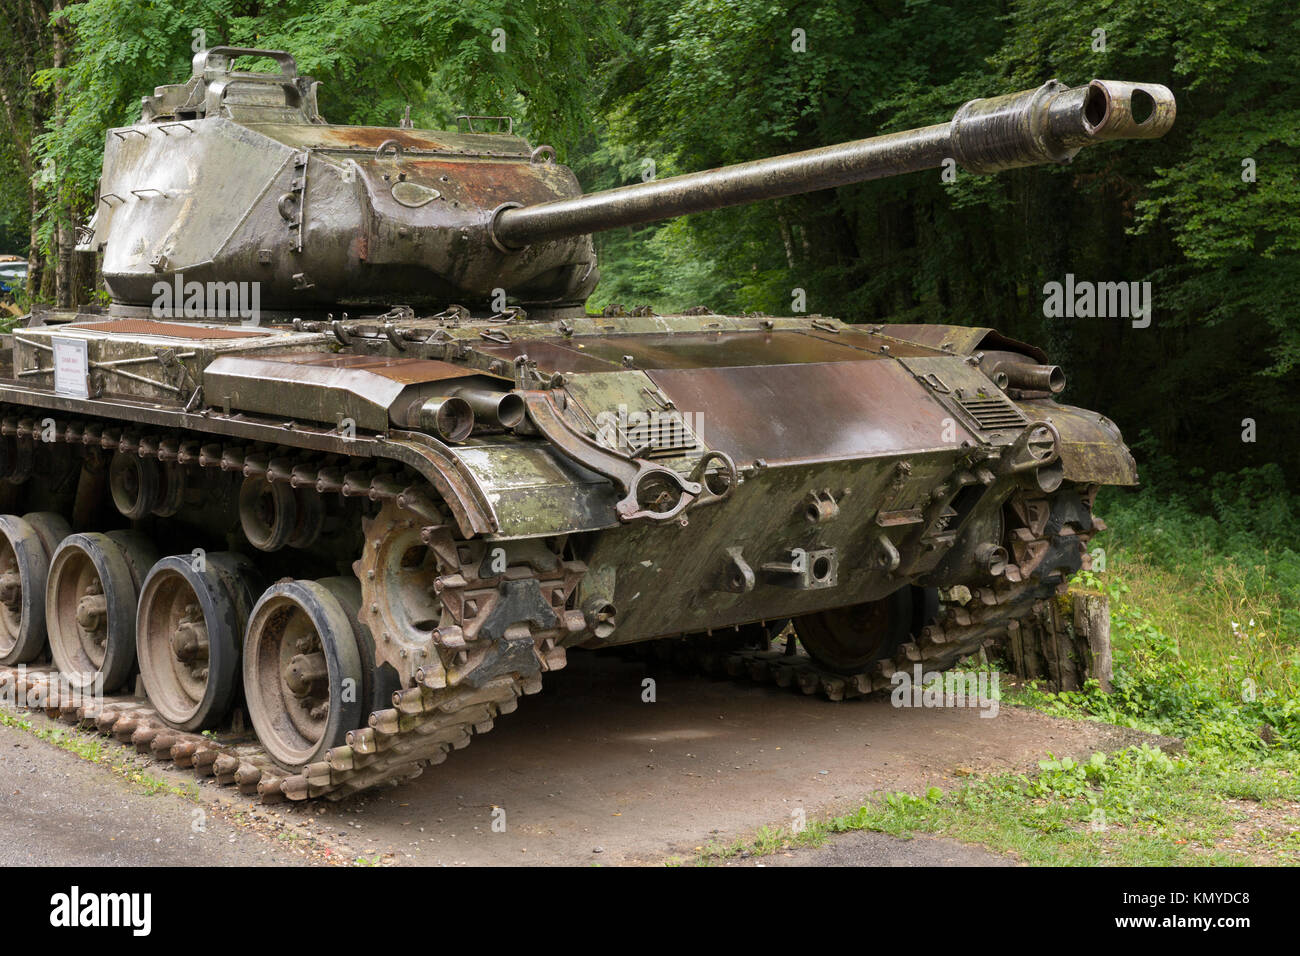 An American M41 Walker Bulldog at the Four-à-Chaux site of the Maginot Line at Lembach, Alsace Stock Photo